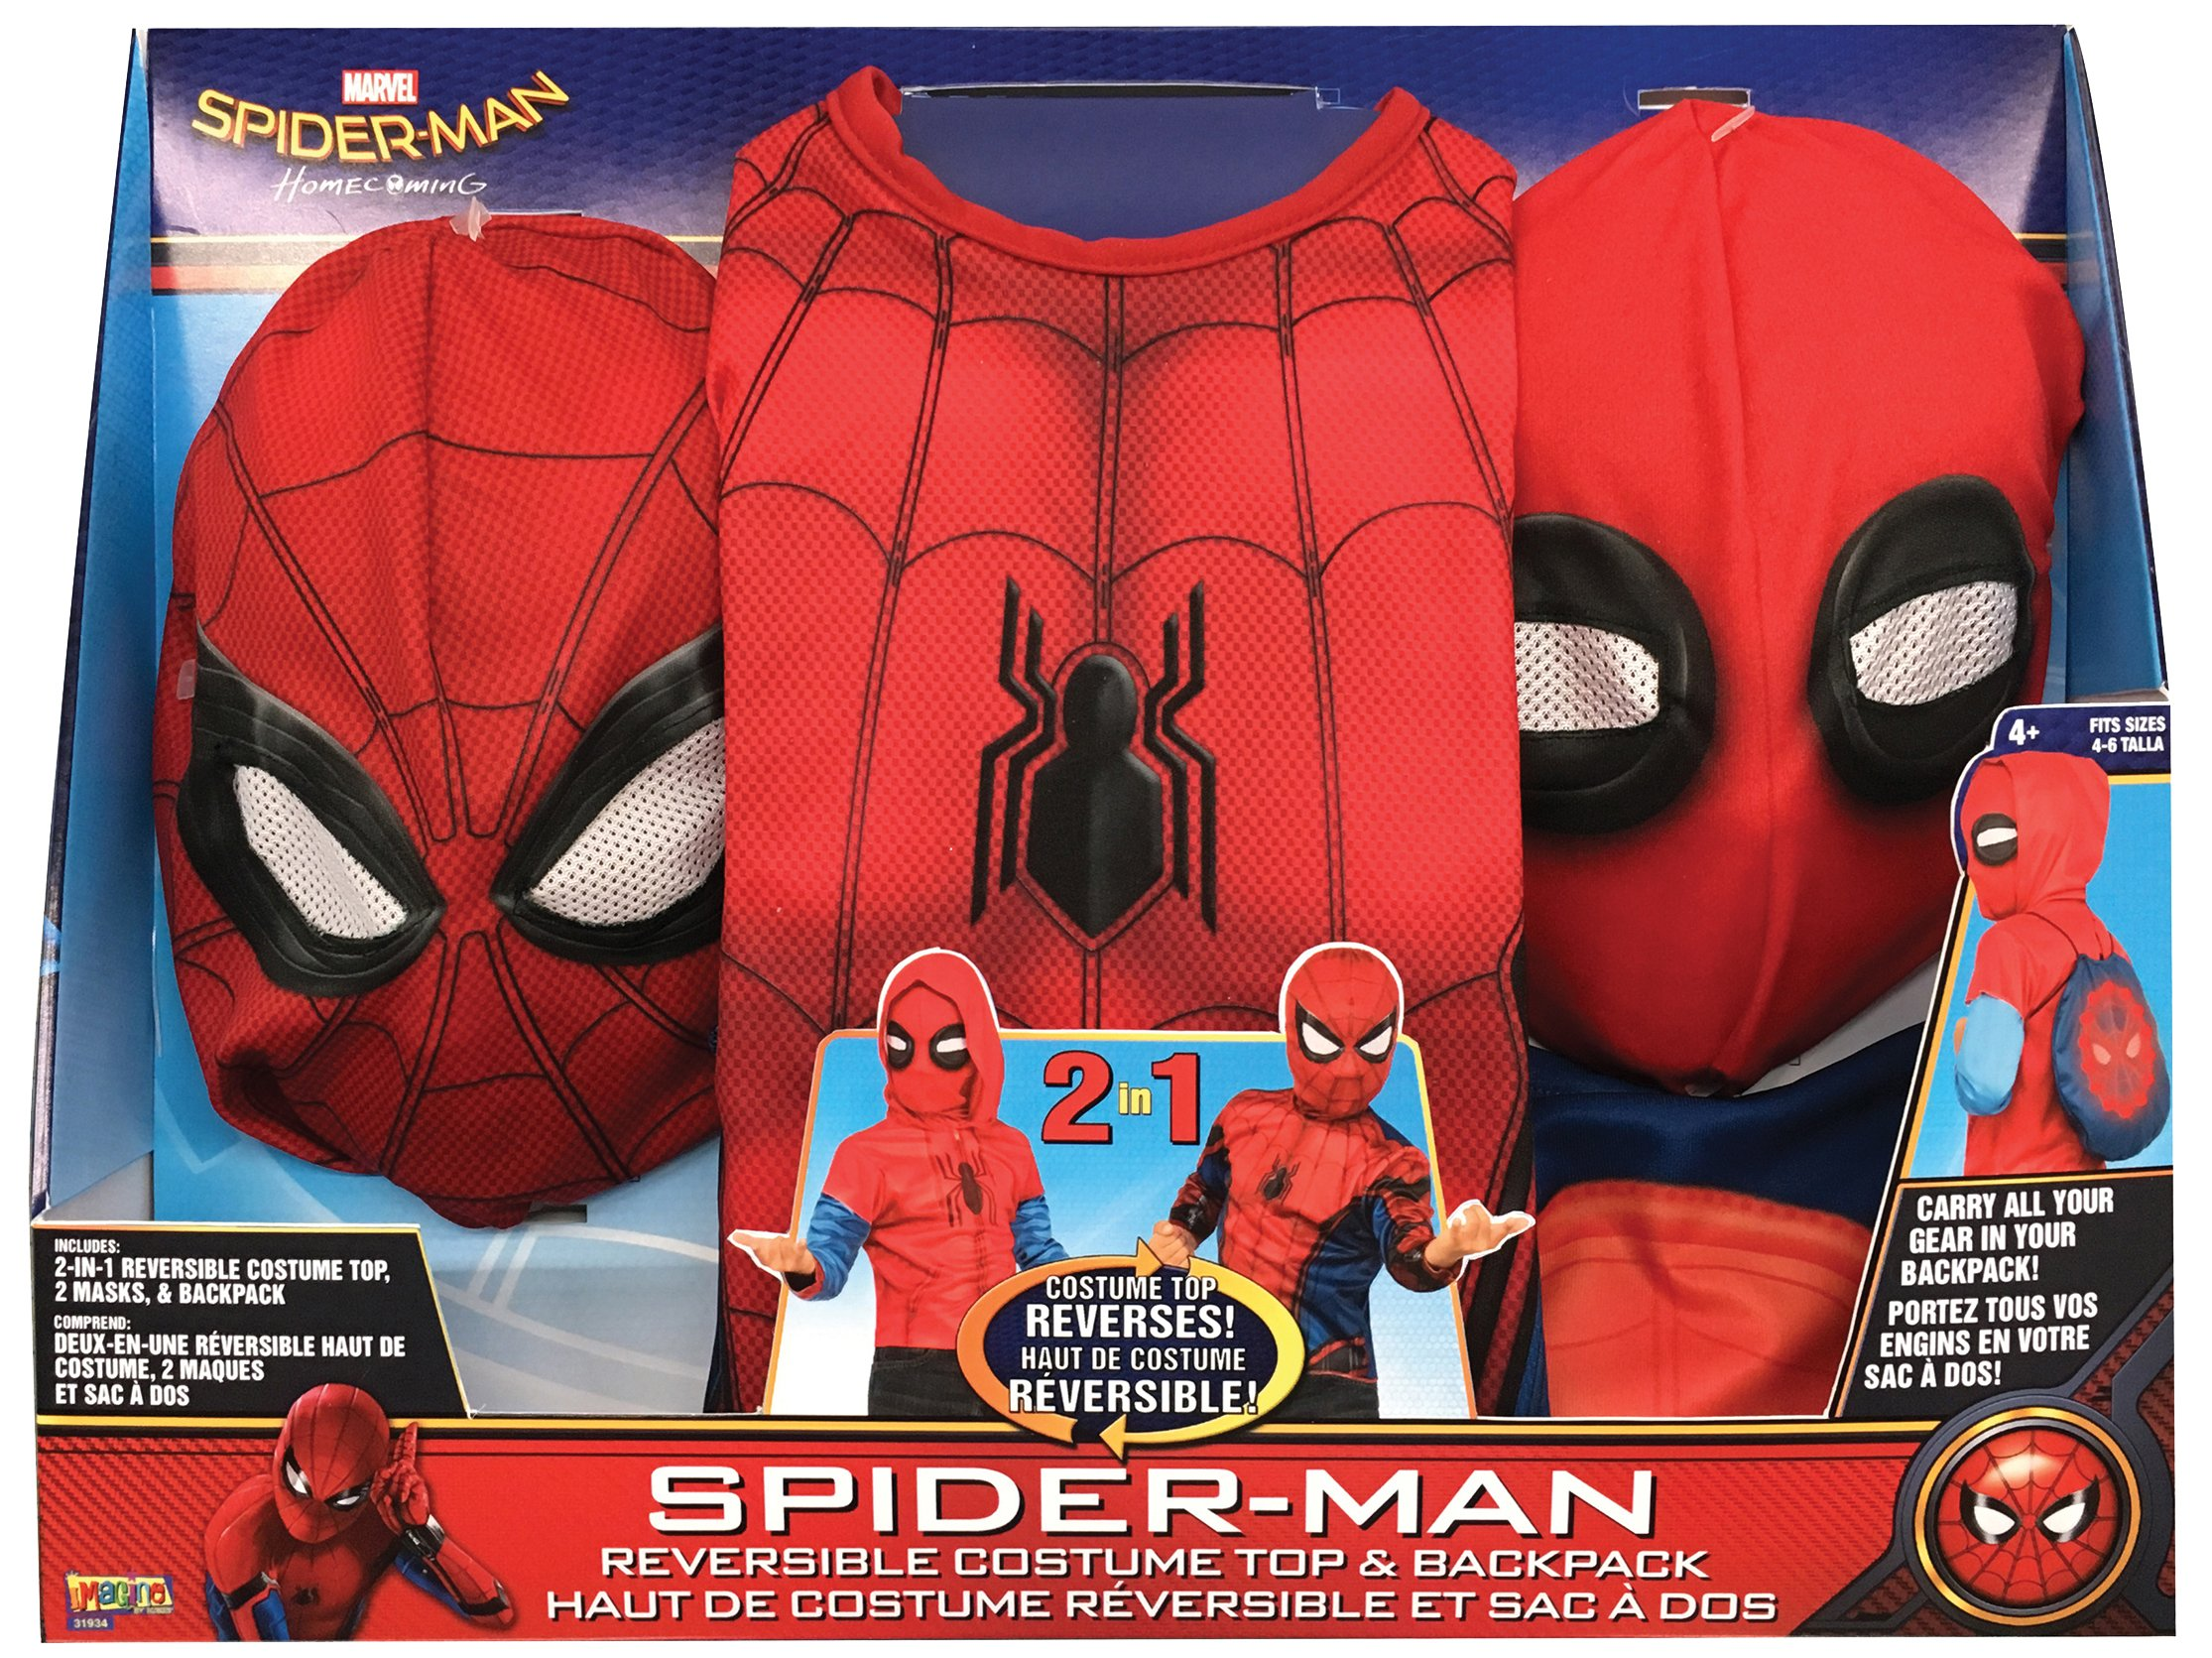 Tall Coffee Table Dress Ups Spider Man Homecoming 2 In 1 Children S